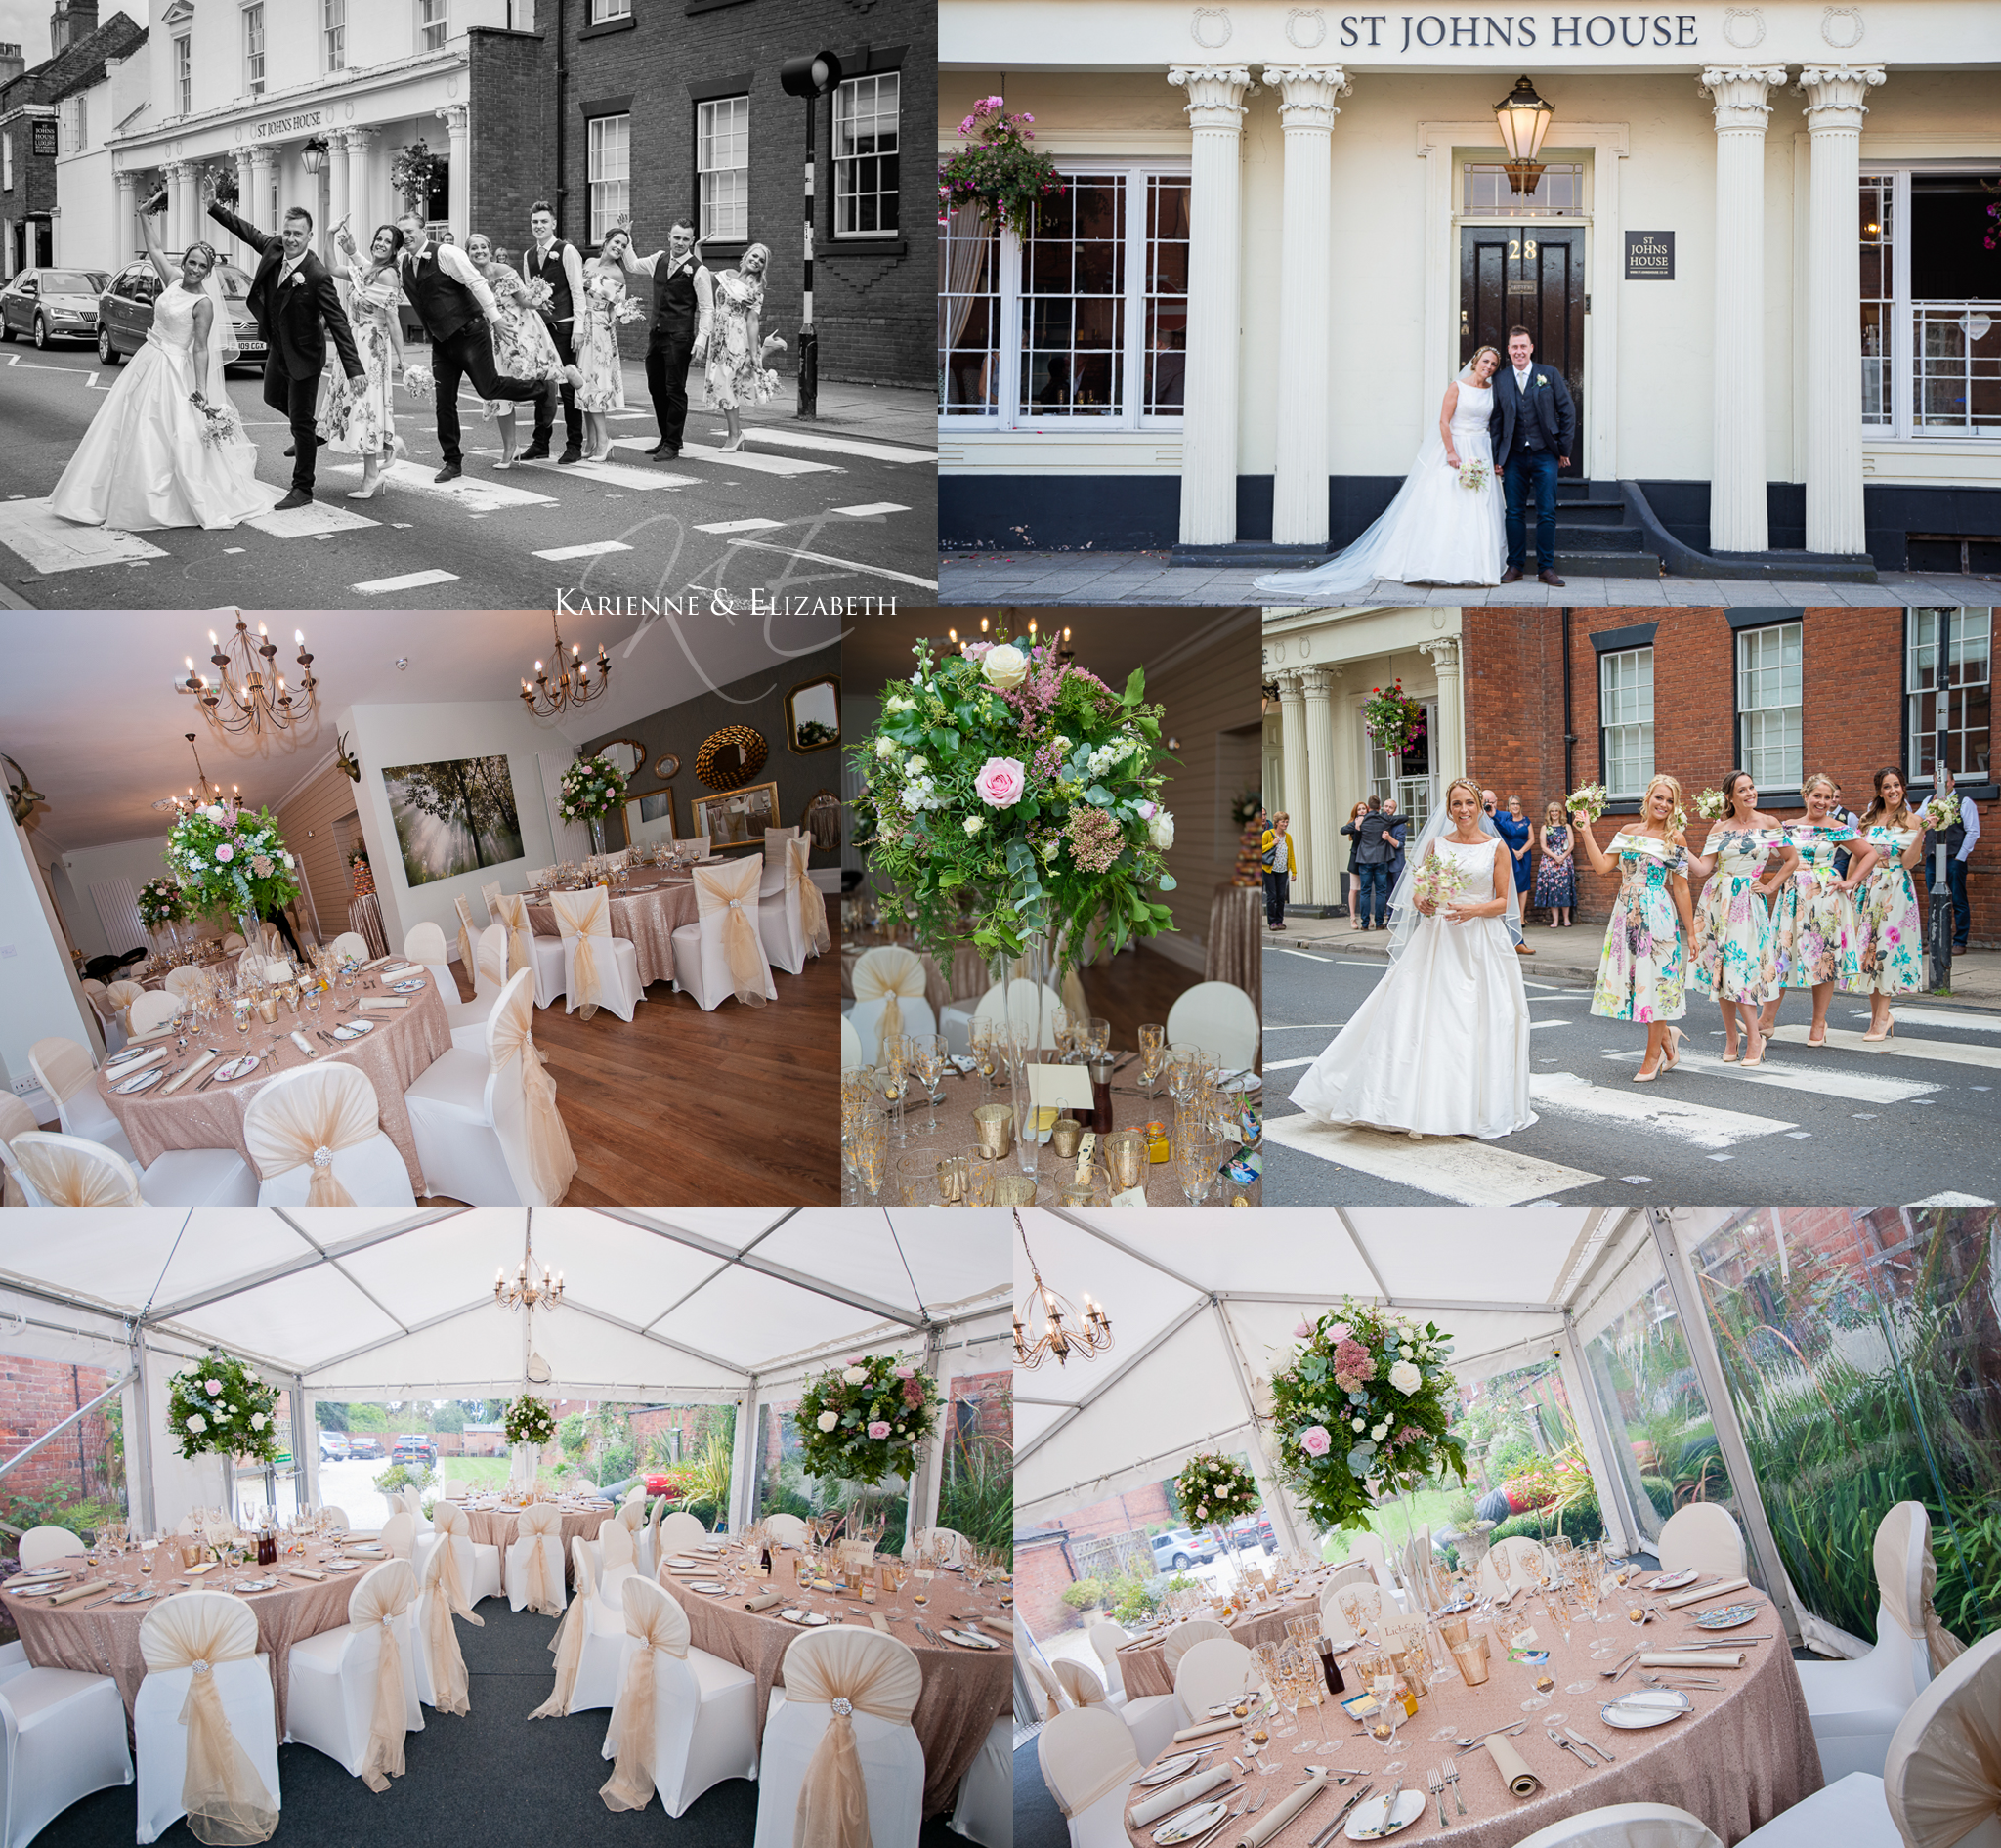 St Johns House wedding venue St Johns House Lichfield